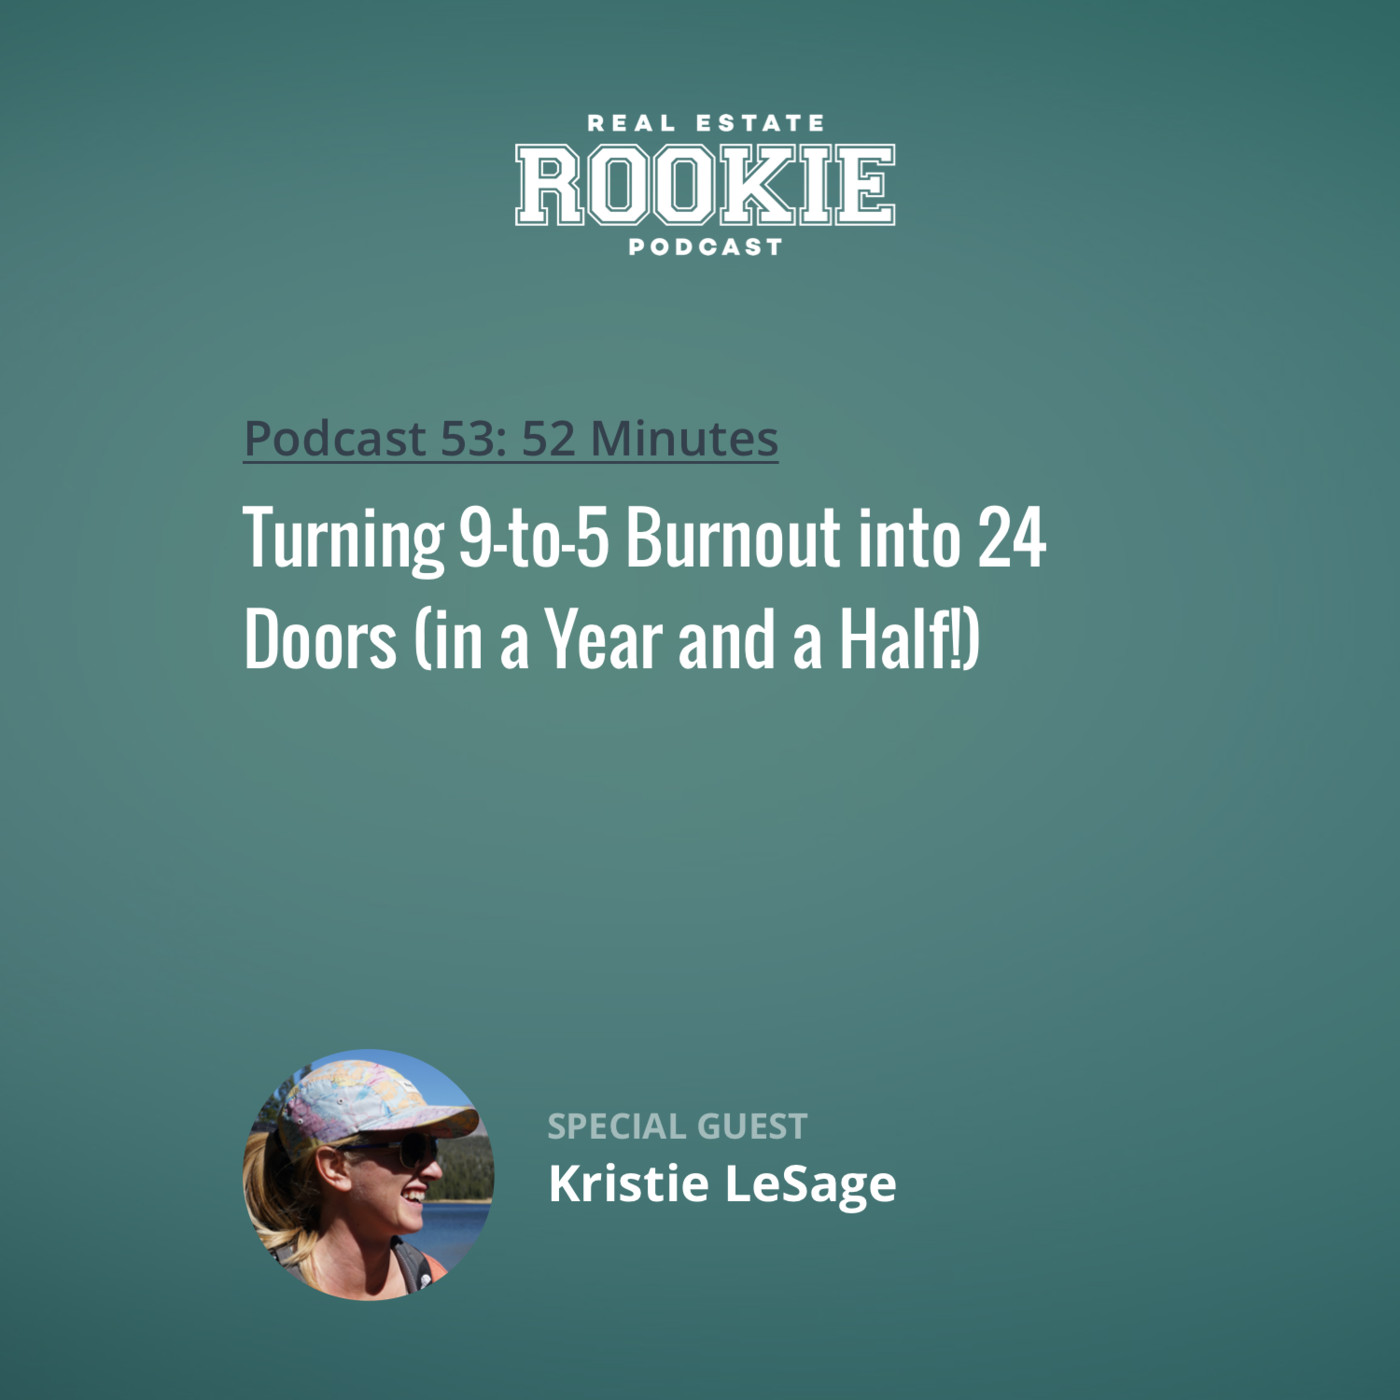 Turning 9-to-5 Burnout into 24 Doors (in a Year and a Half!) with Kristie LeSage